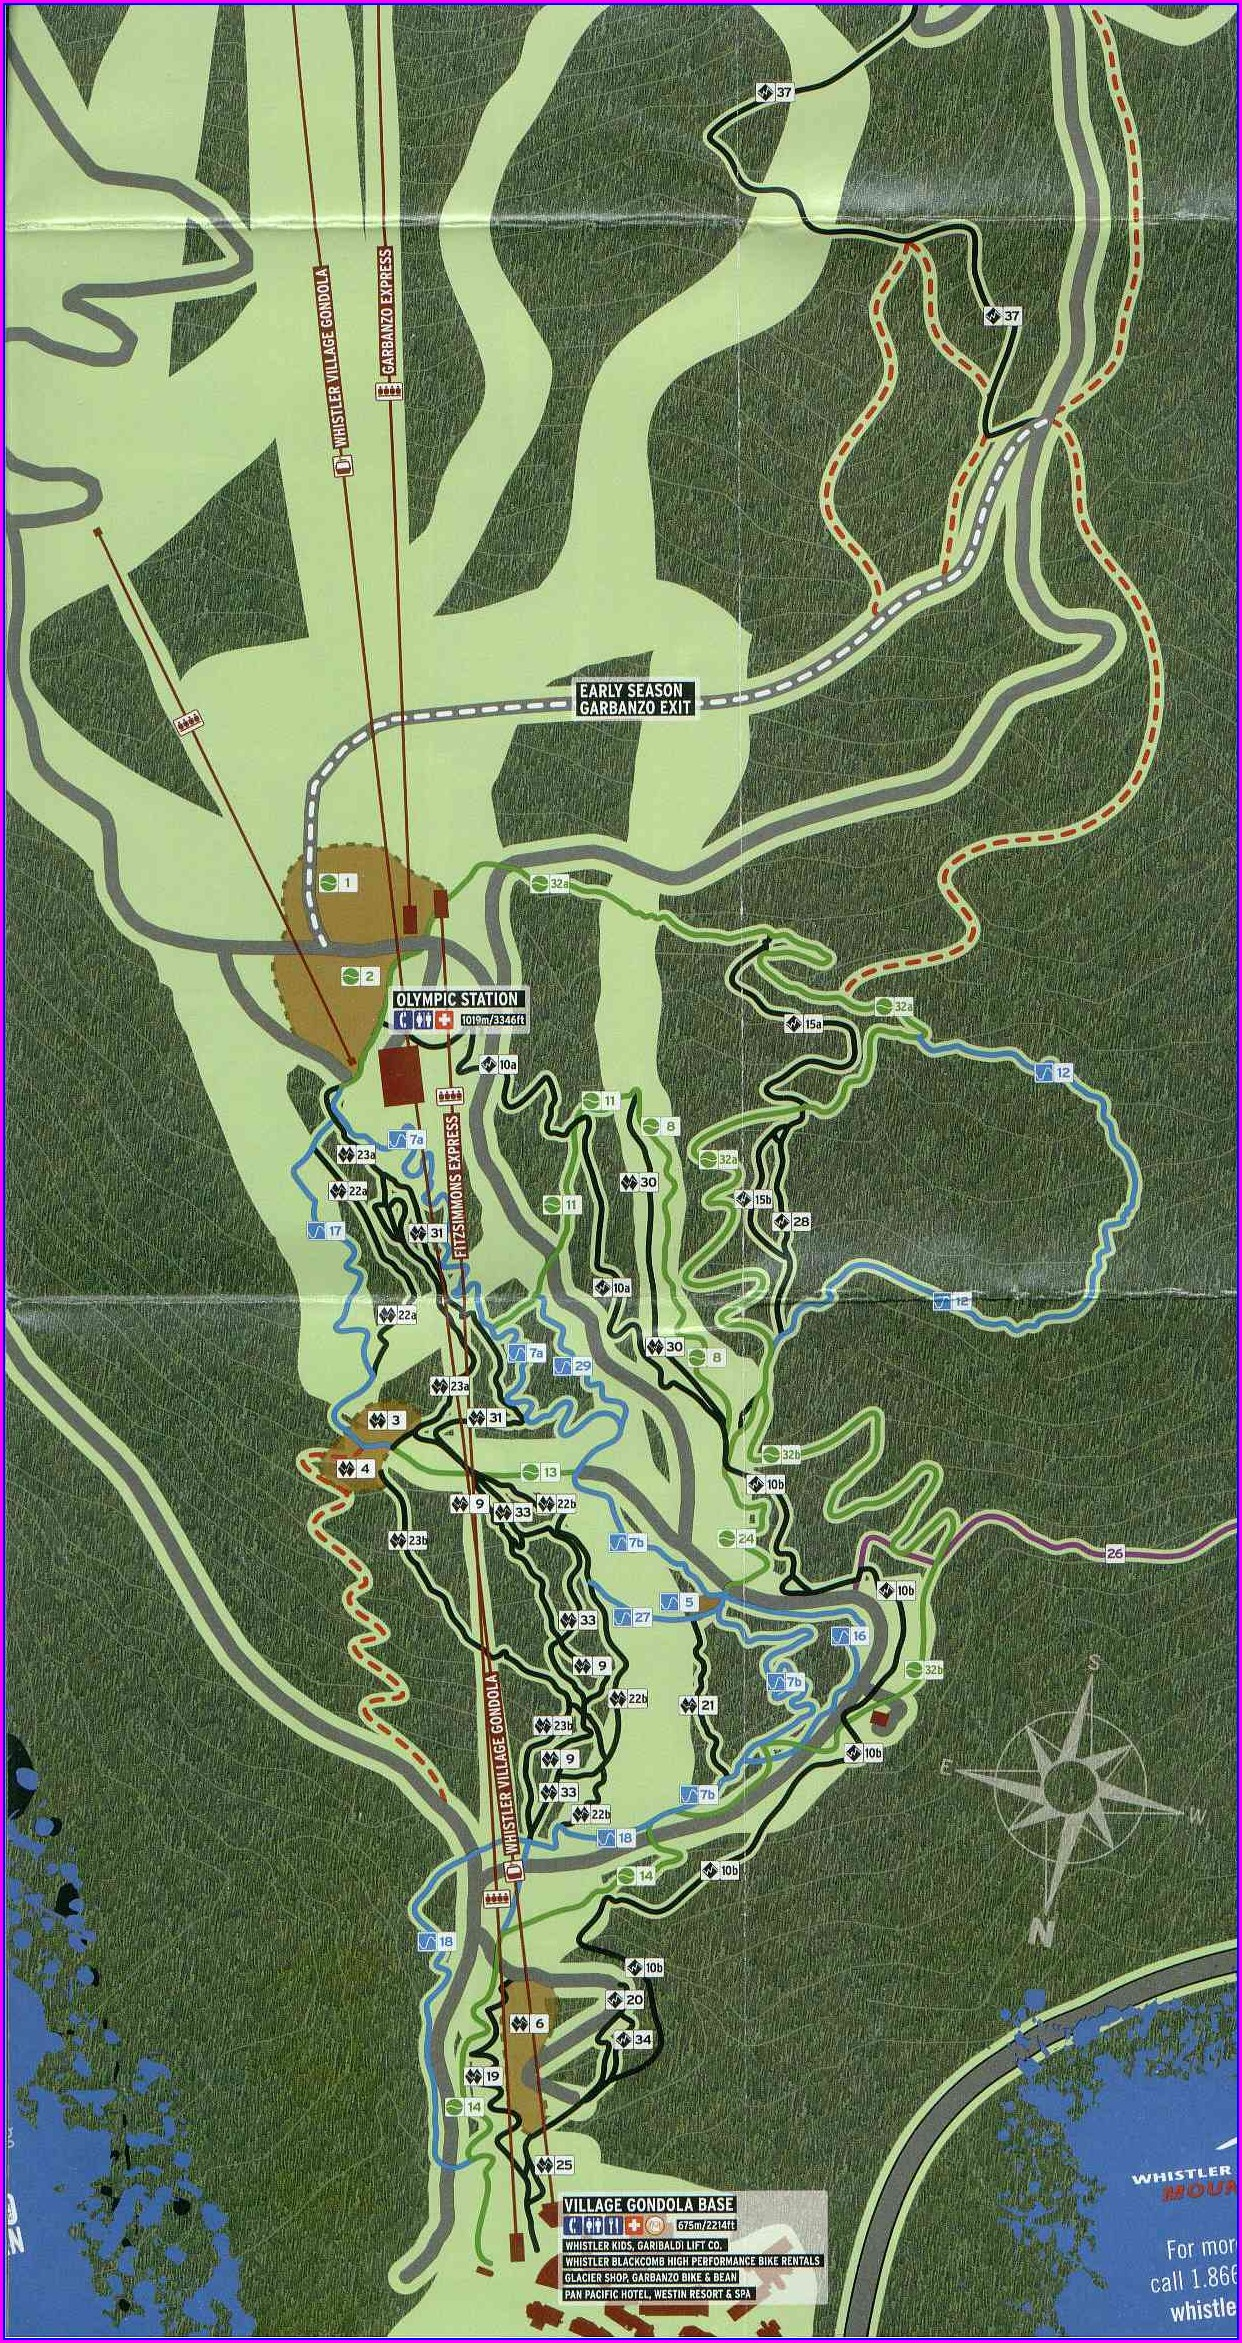 Whistler Bike Park Map